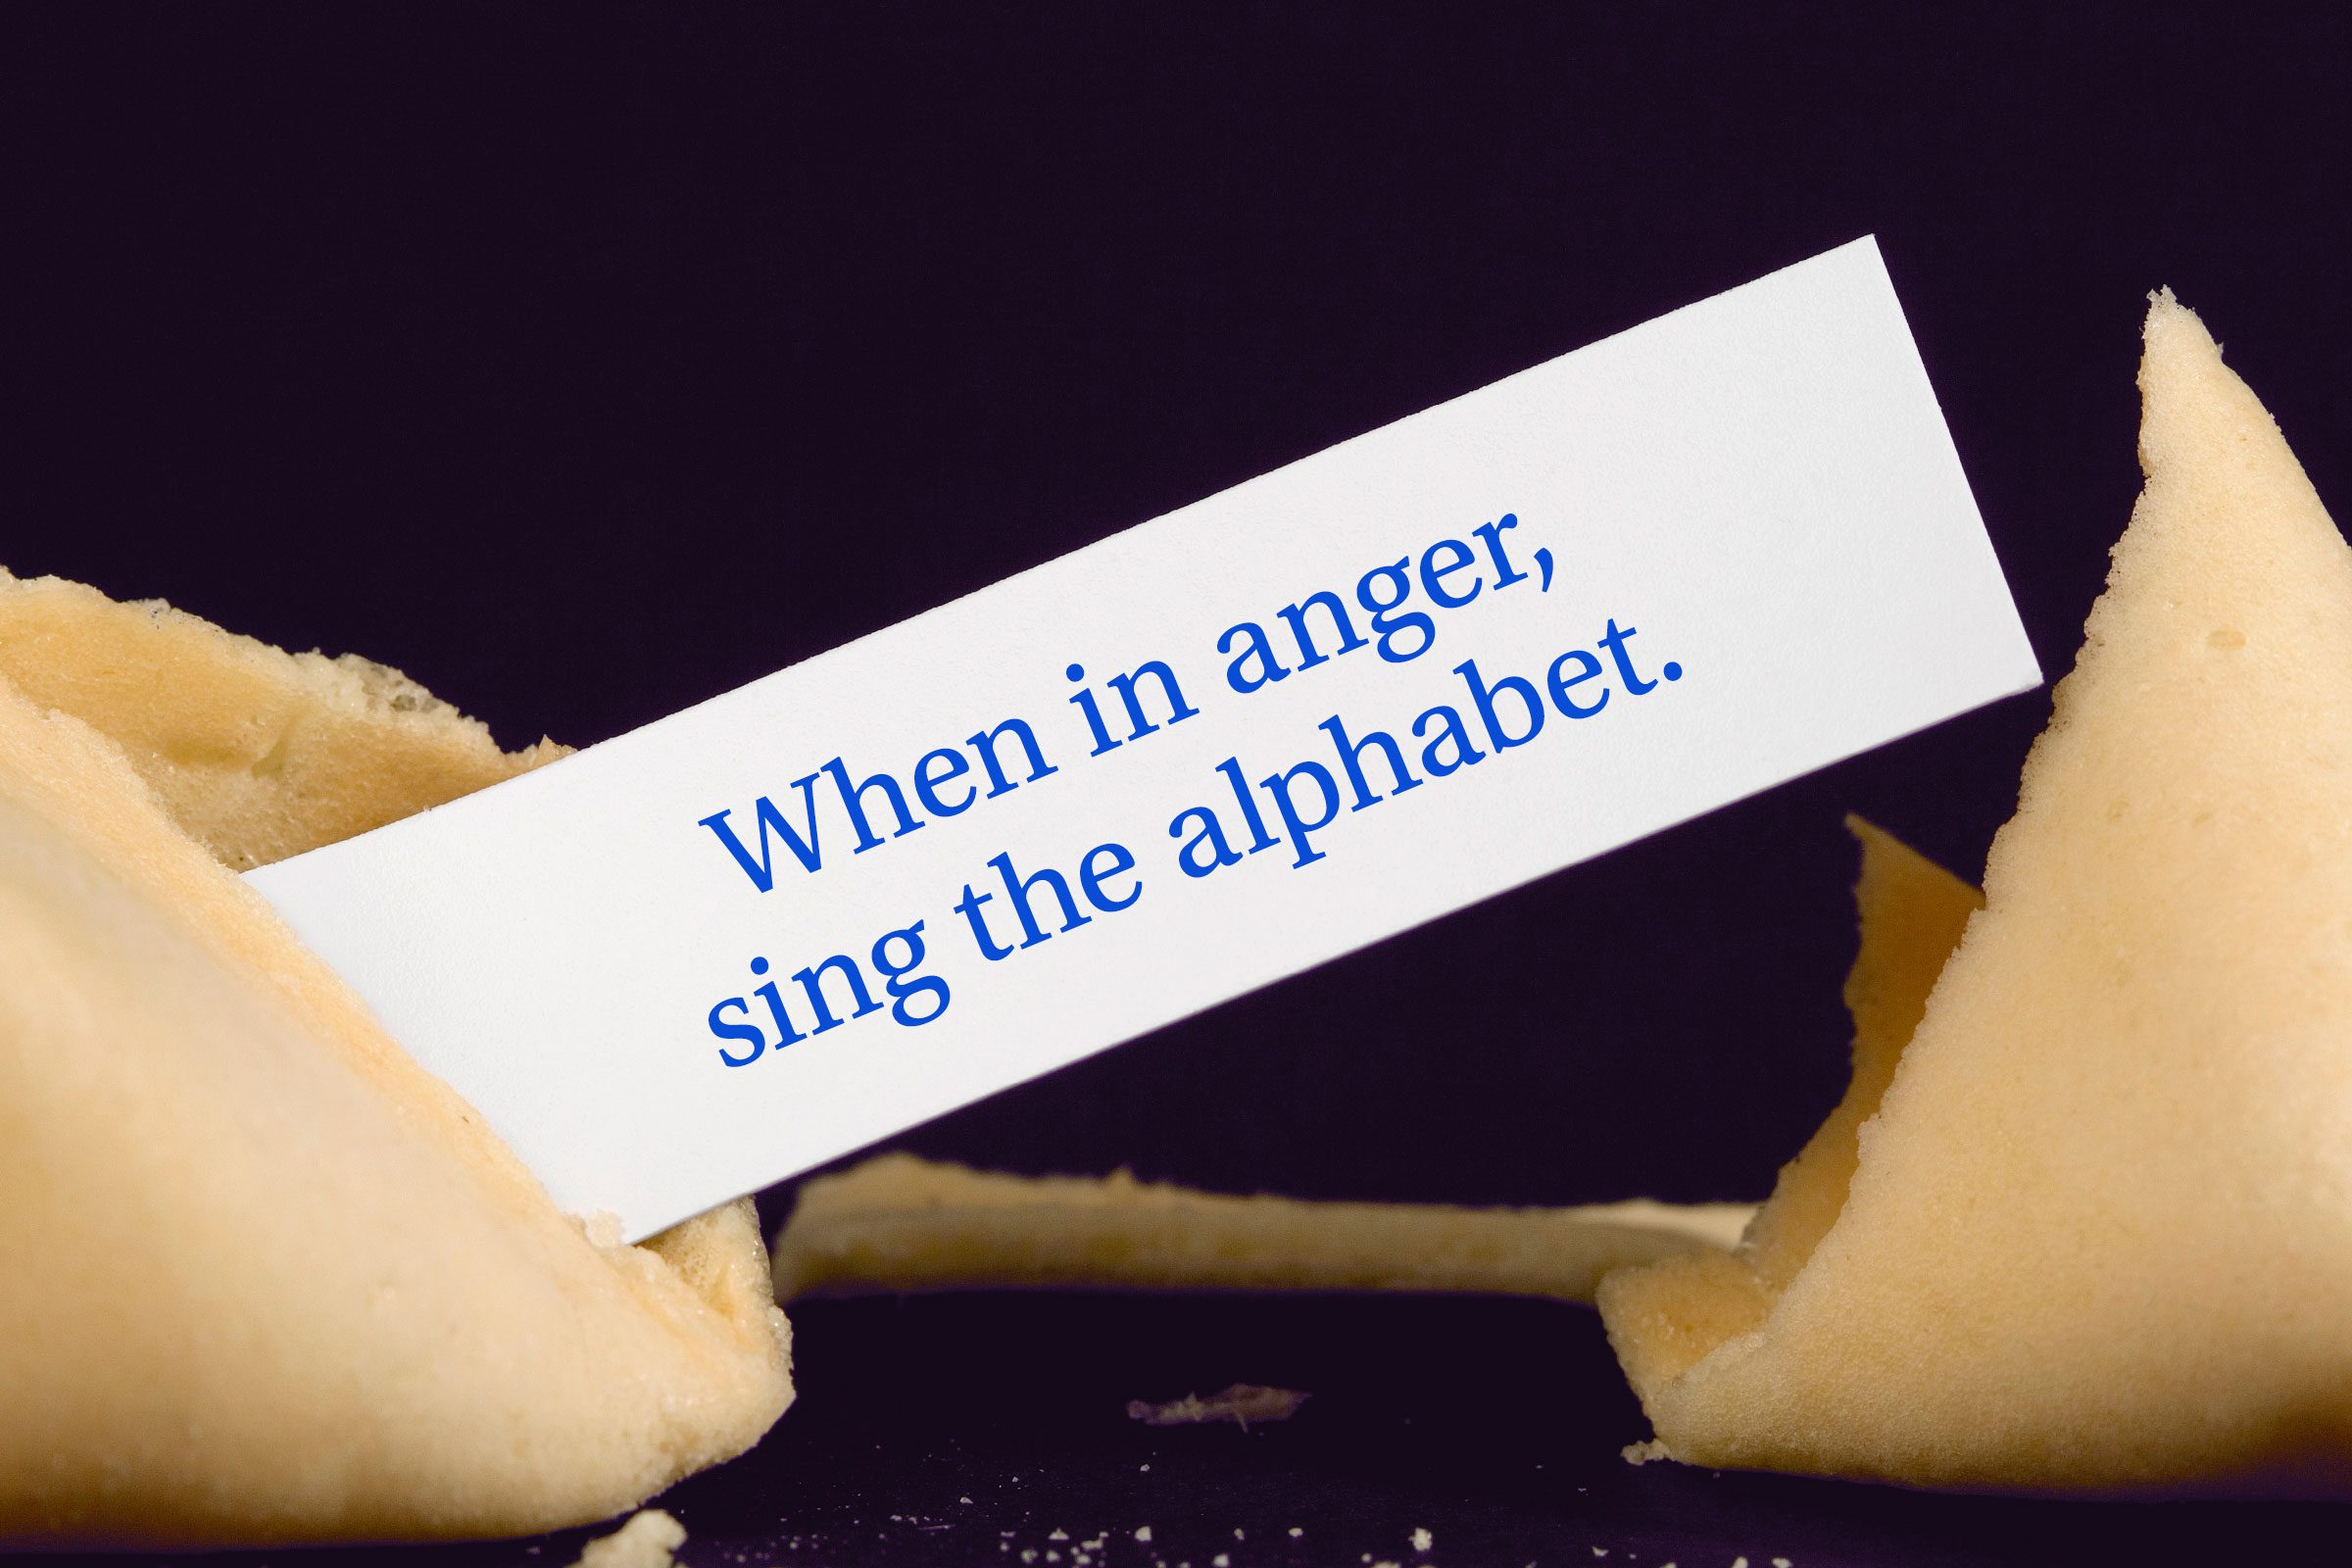 For image: When in anger, sing the alphabet.